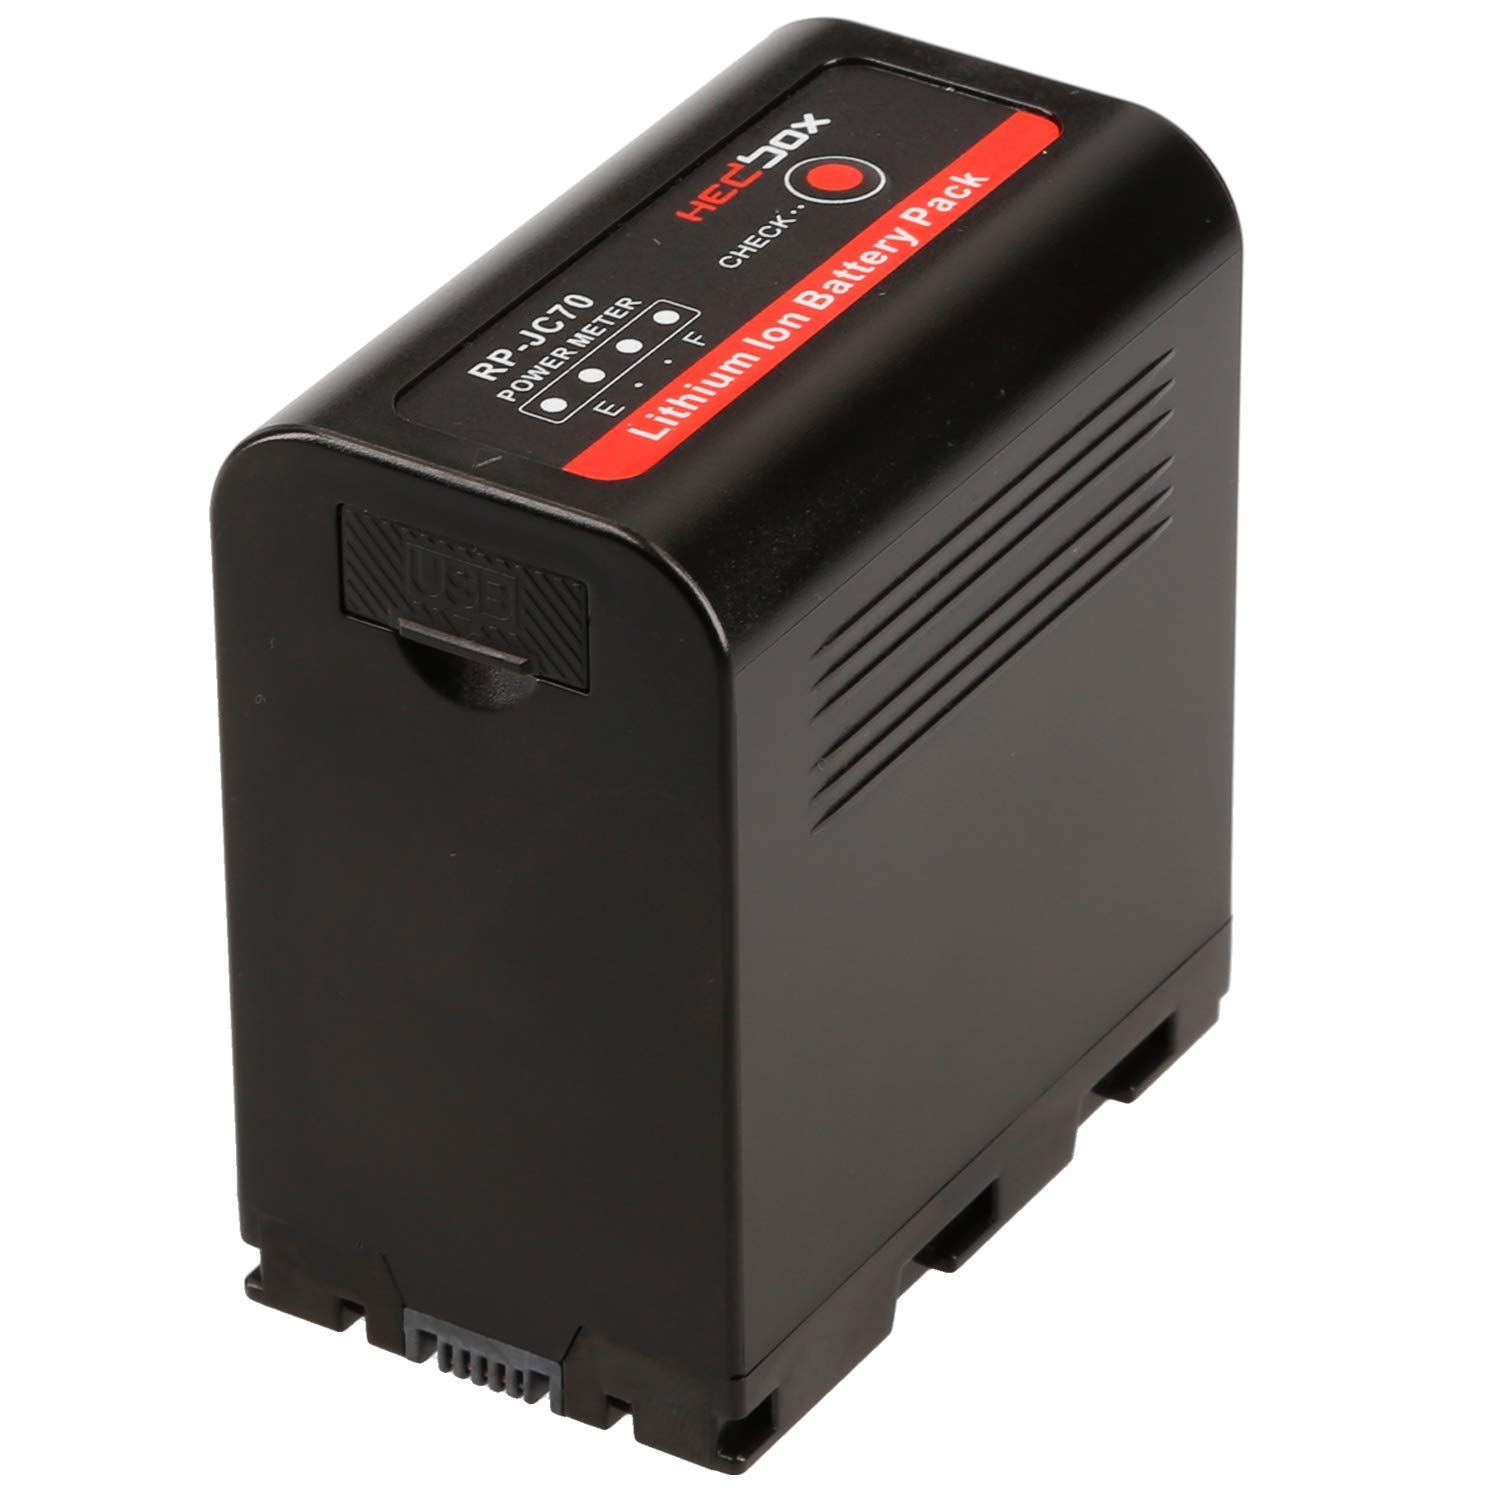 HEDBOX | RP-JC70 | Li-Ion Battery 7800mAh, DC and USB Power Out, 4-LED Capacity Meter for JVC SSL- JVC50/JVC70/JVC75 and GY- HMQ10/LS300/HM200/HM600/HM650, DT-X Camcorders by HEDBOX